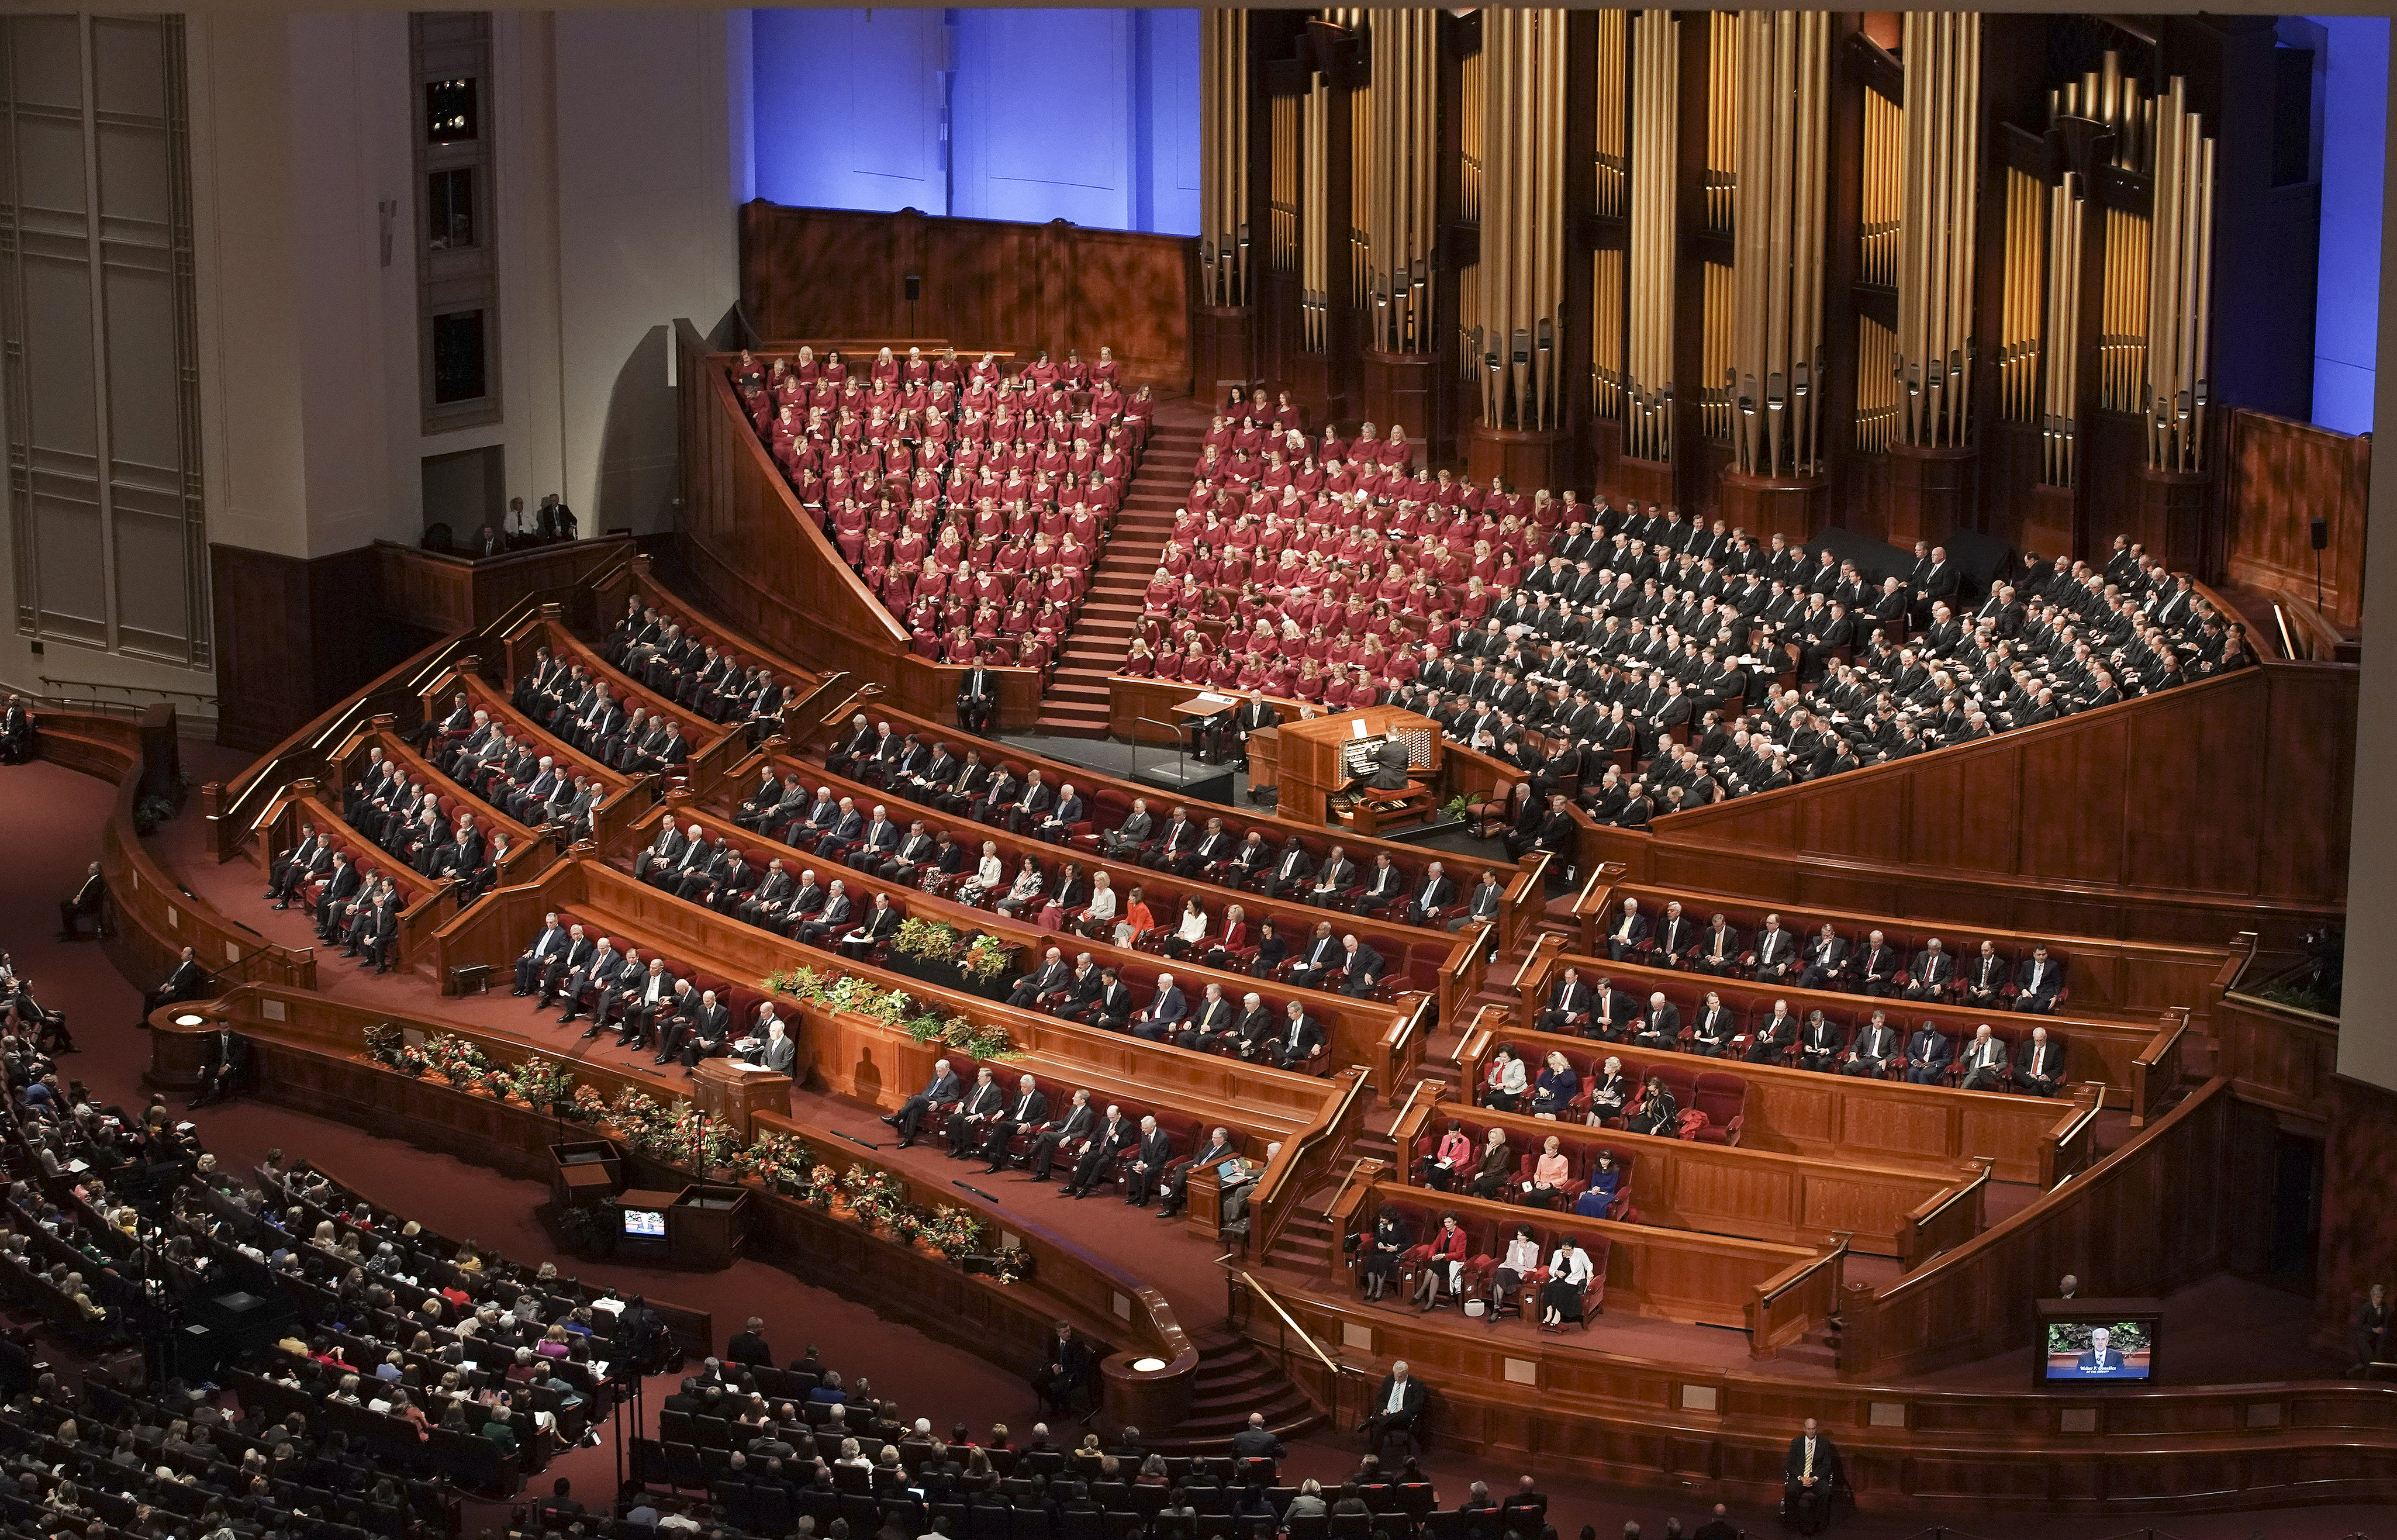 Church leaders and conferencegoers sing during the Sunday morning session of the 189th Semiannual General Conference of The Church of Jesus Christ of Latter-day Saints in Salt Lake City on Sunday, Oct. 6, 2019.